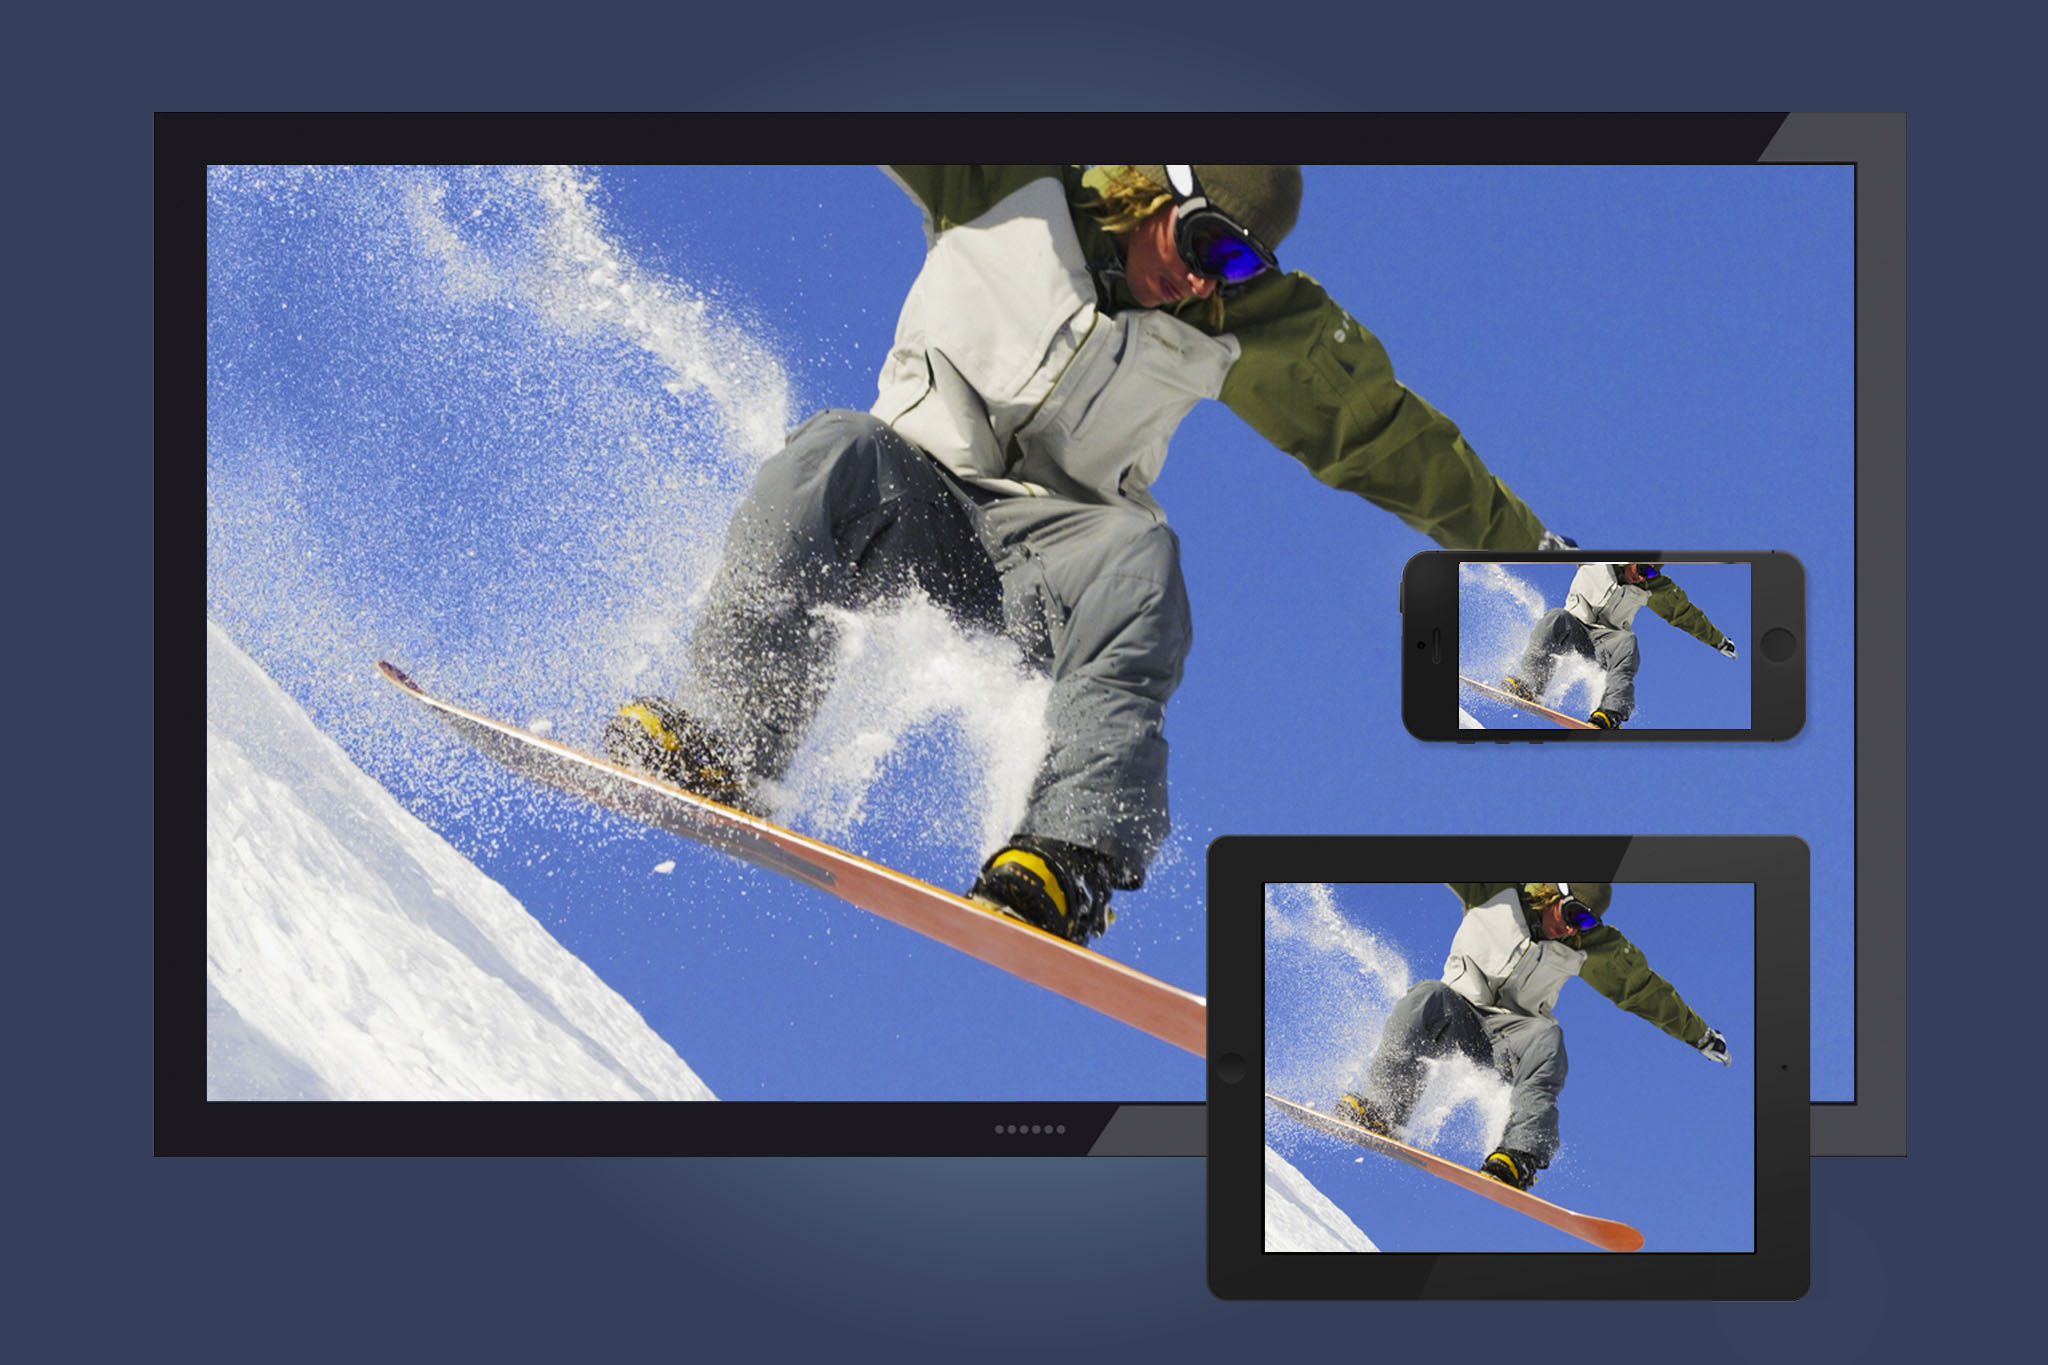 HEVC & MPEG-DASH, video adaptive bitrate (ABR) multistreaming, Beamr HEVC Codec SDK, V.265 Feature Set